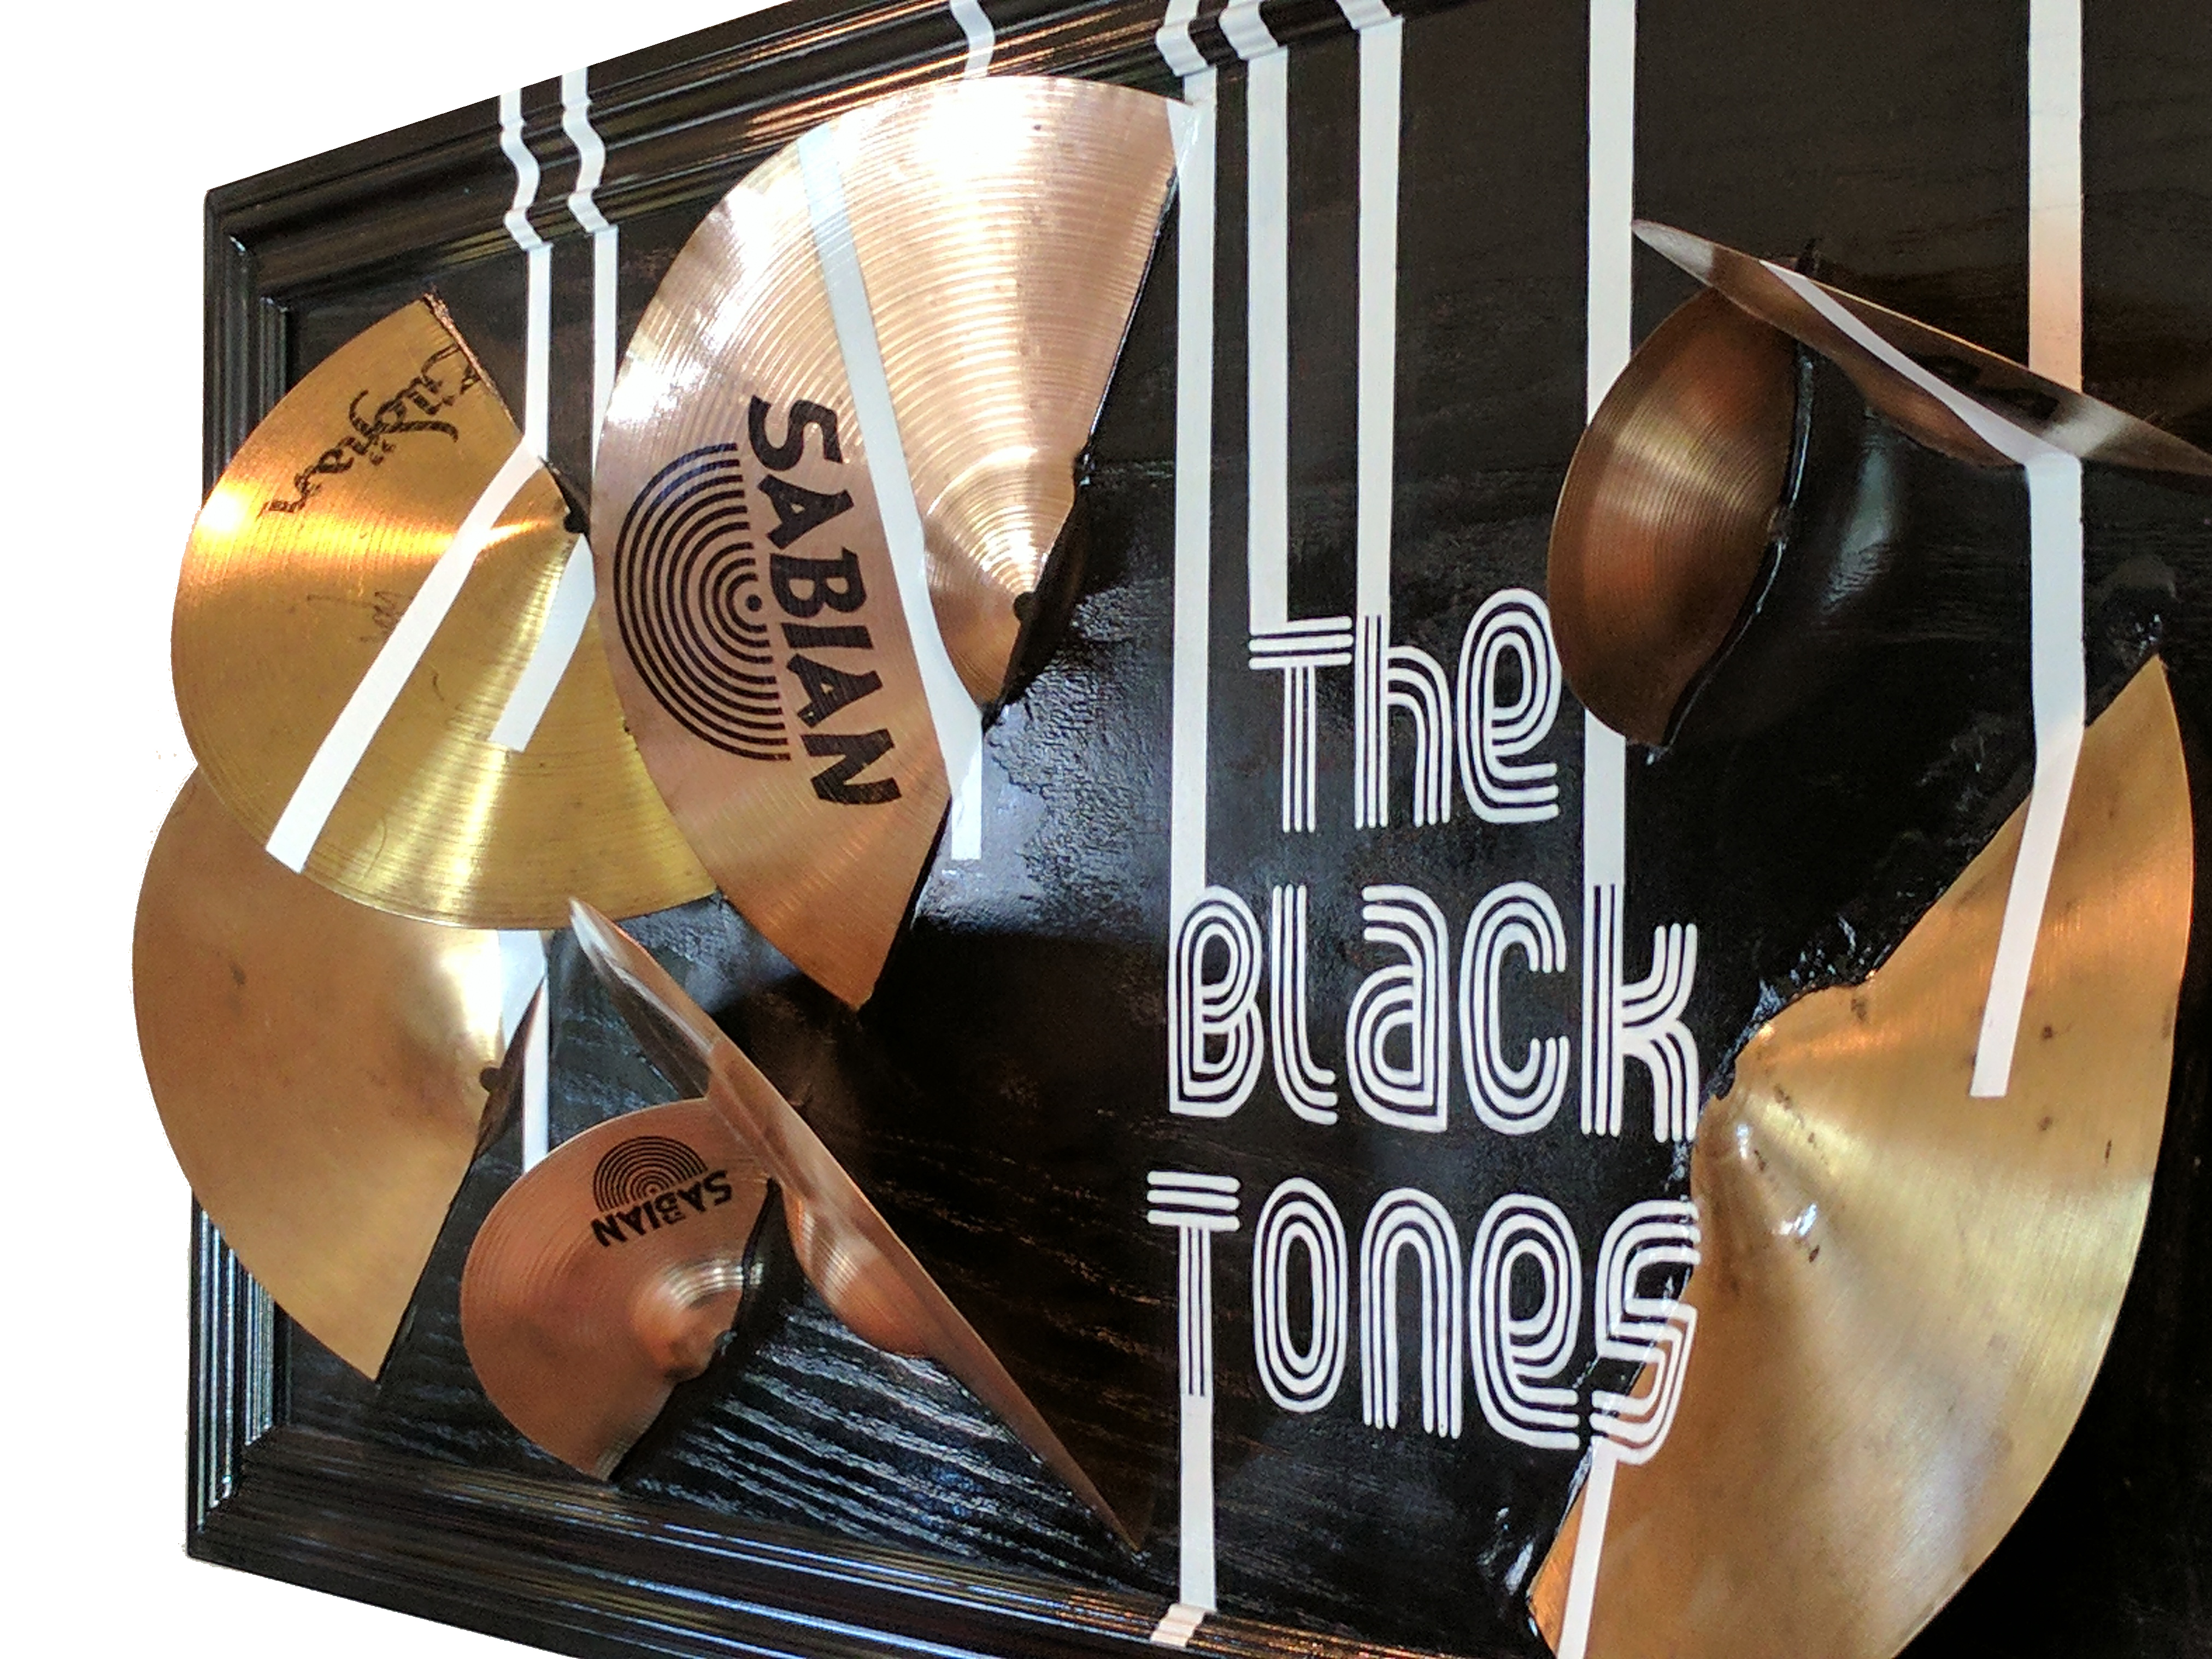 The Black Tones 2